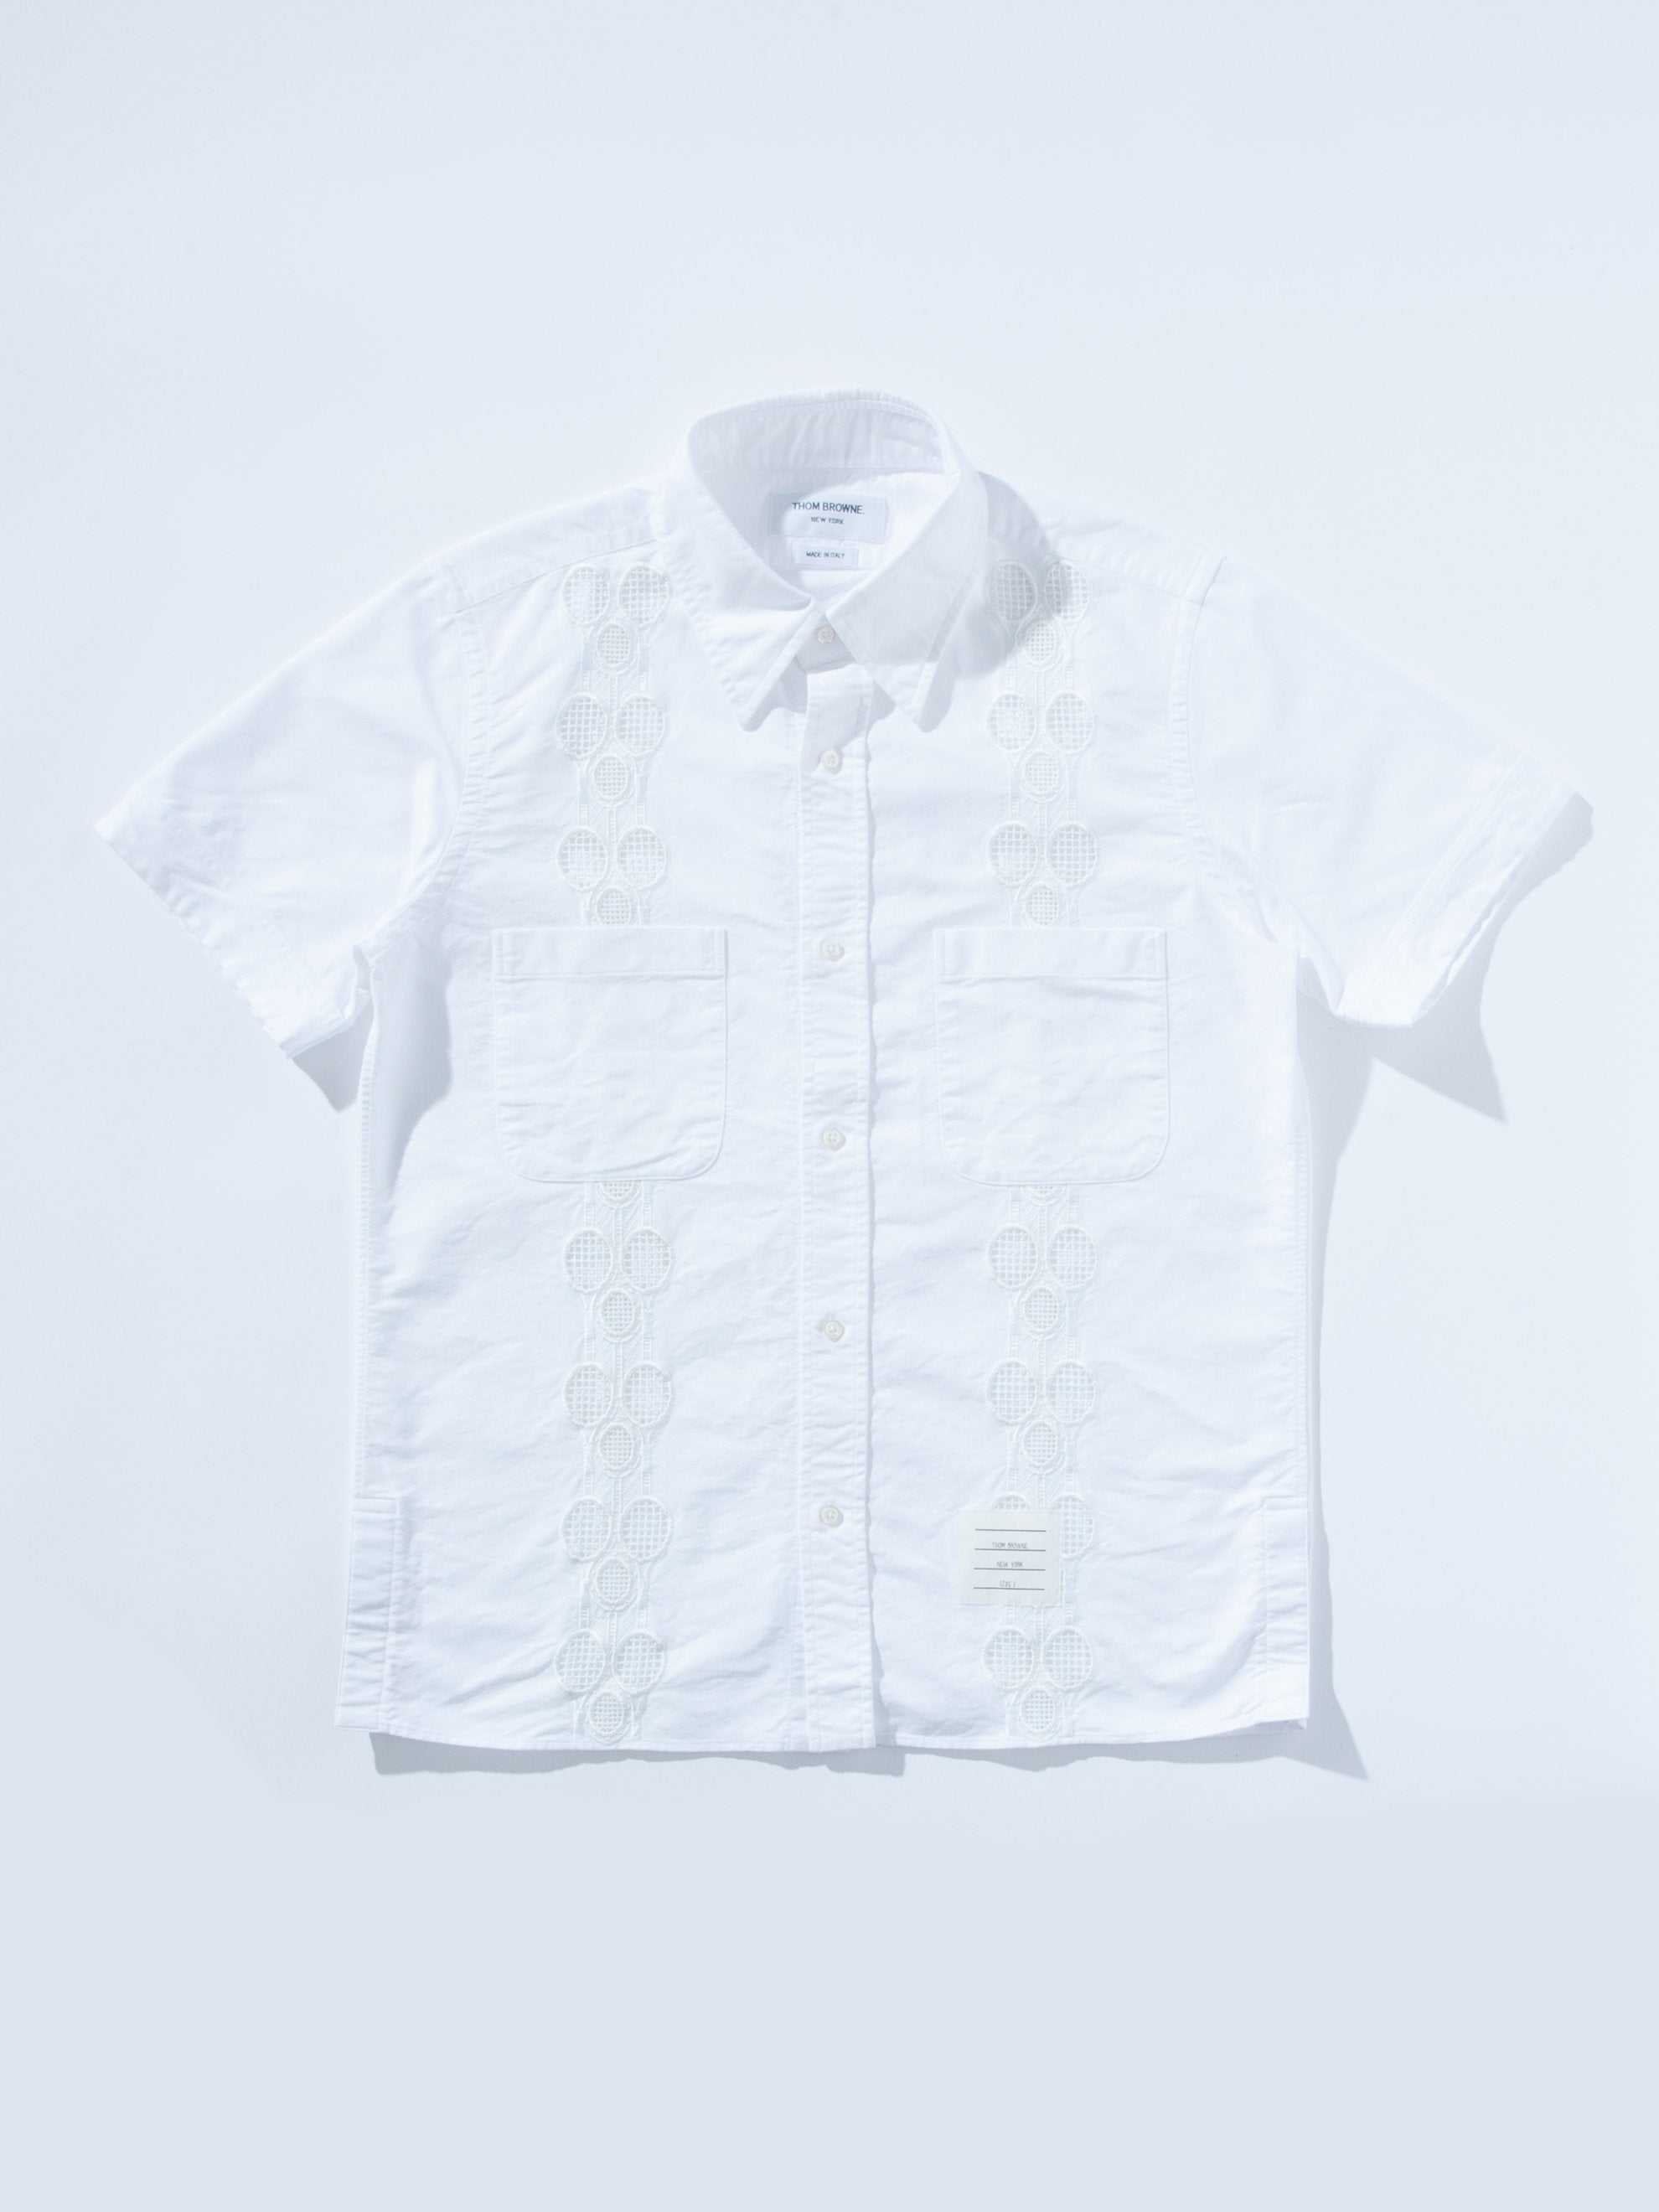 White Cuban Shirt W/ Tennis Racket Embroidery 1